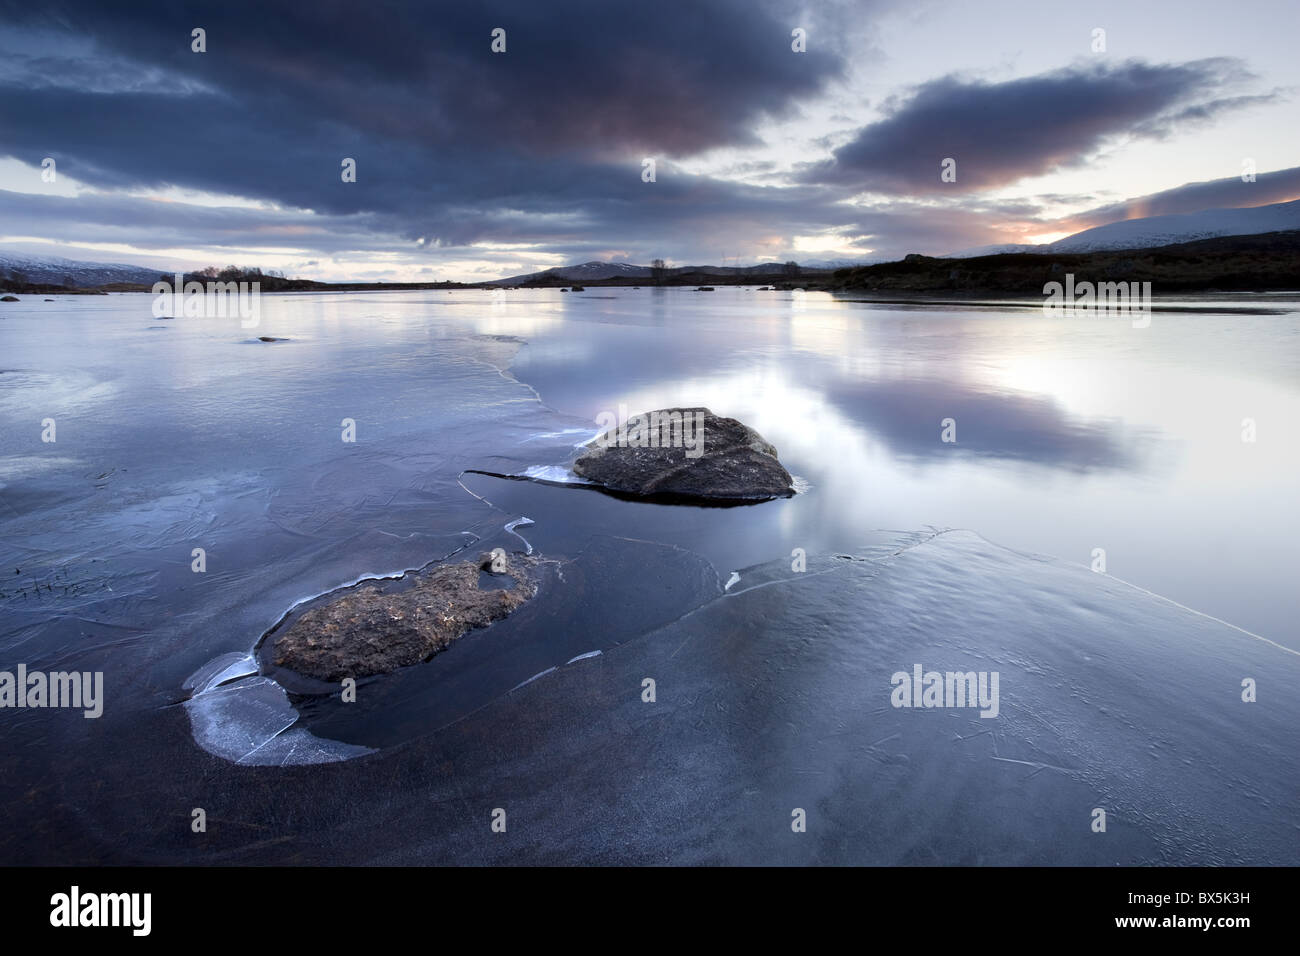 Winter view of Loch Ba' at dawn, loch partly frozen with two large rocks protruding from the iceg, Rannoch Moo, - Stock Image